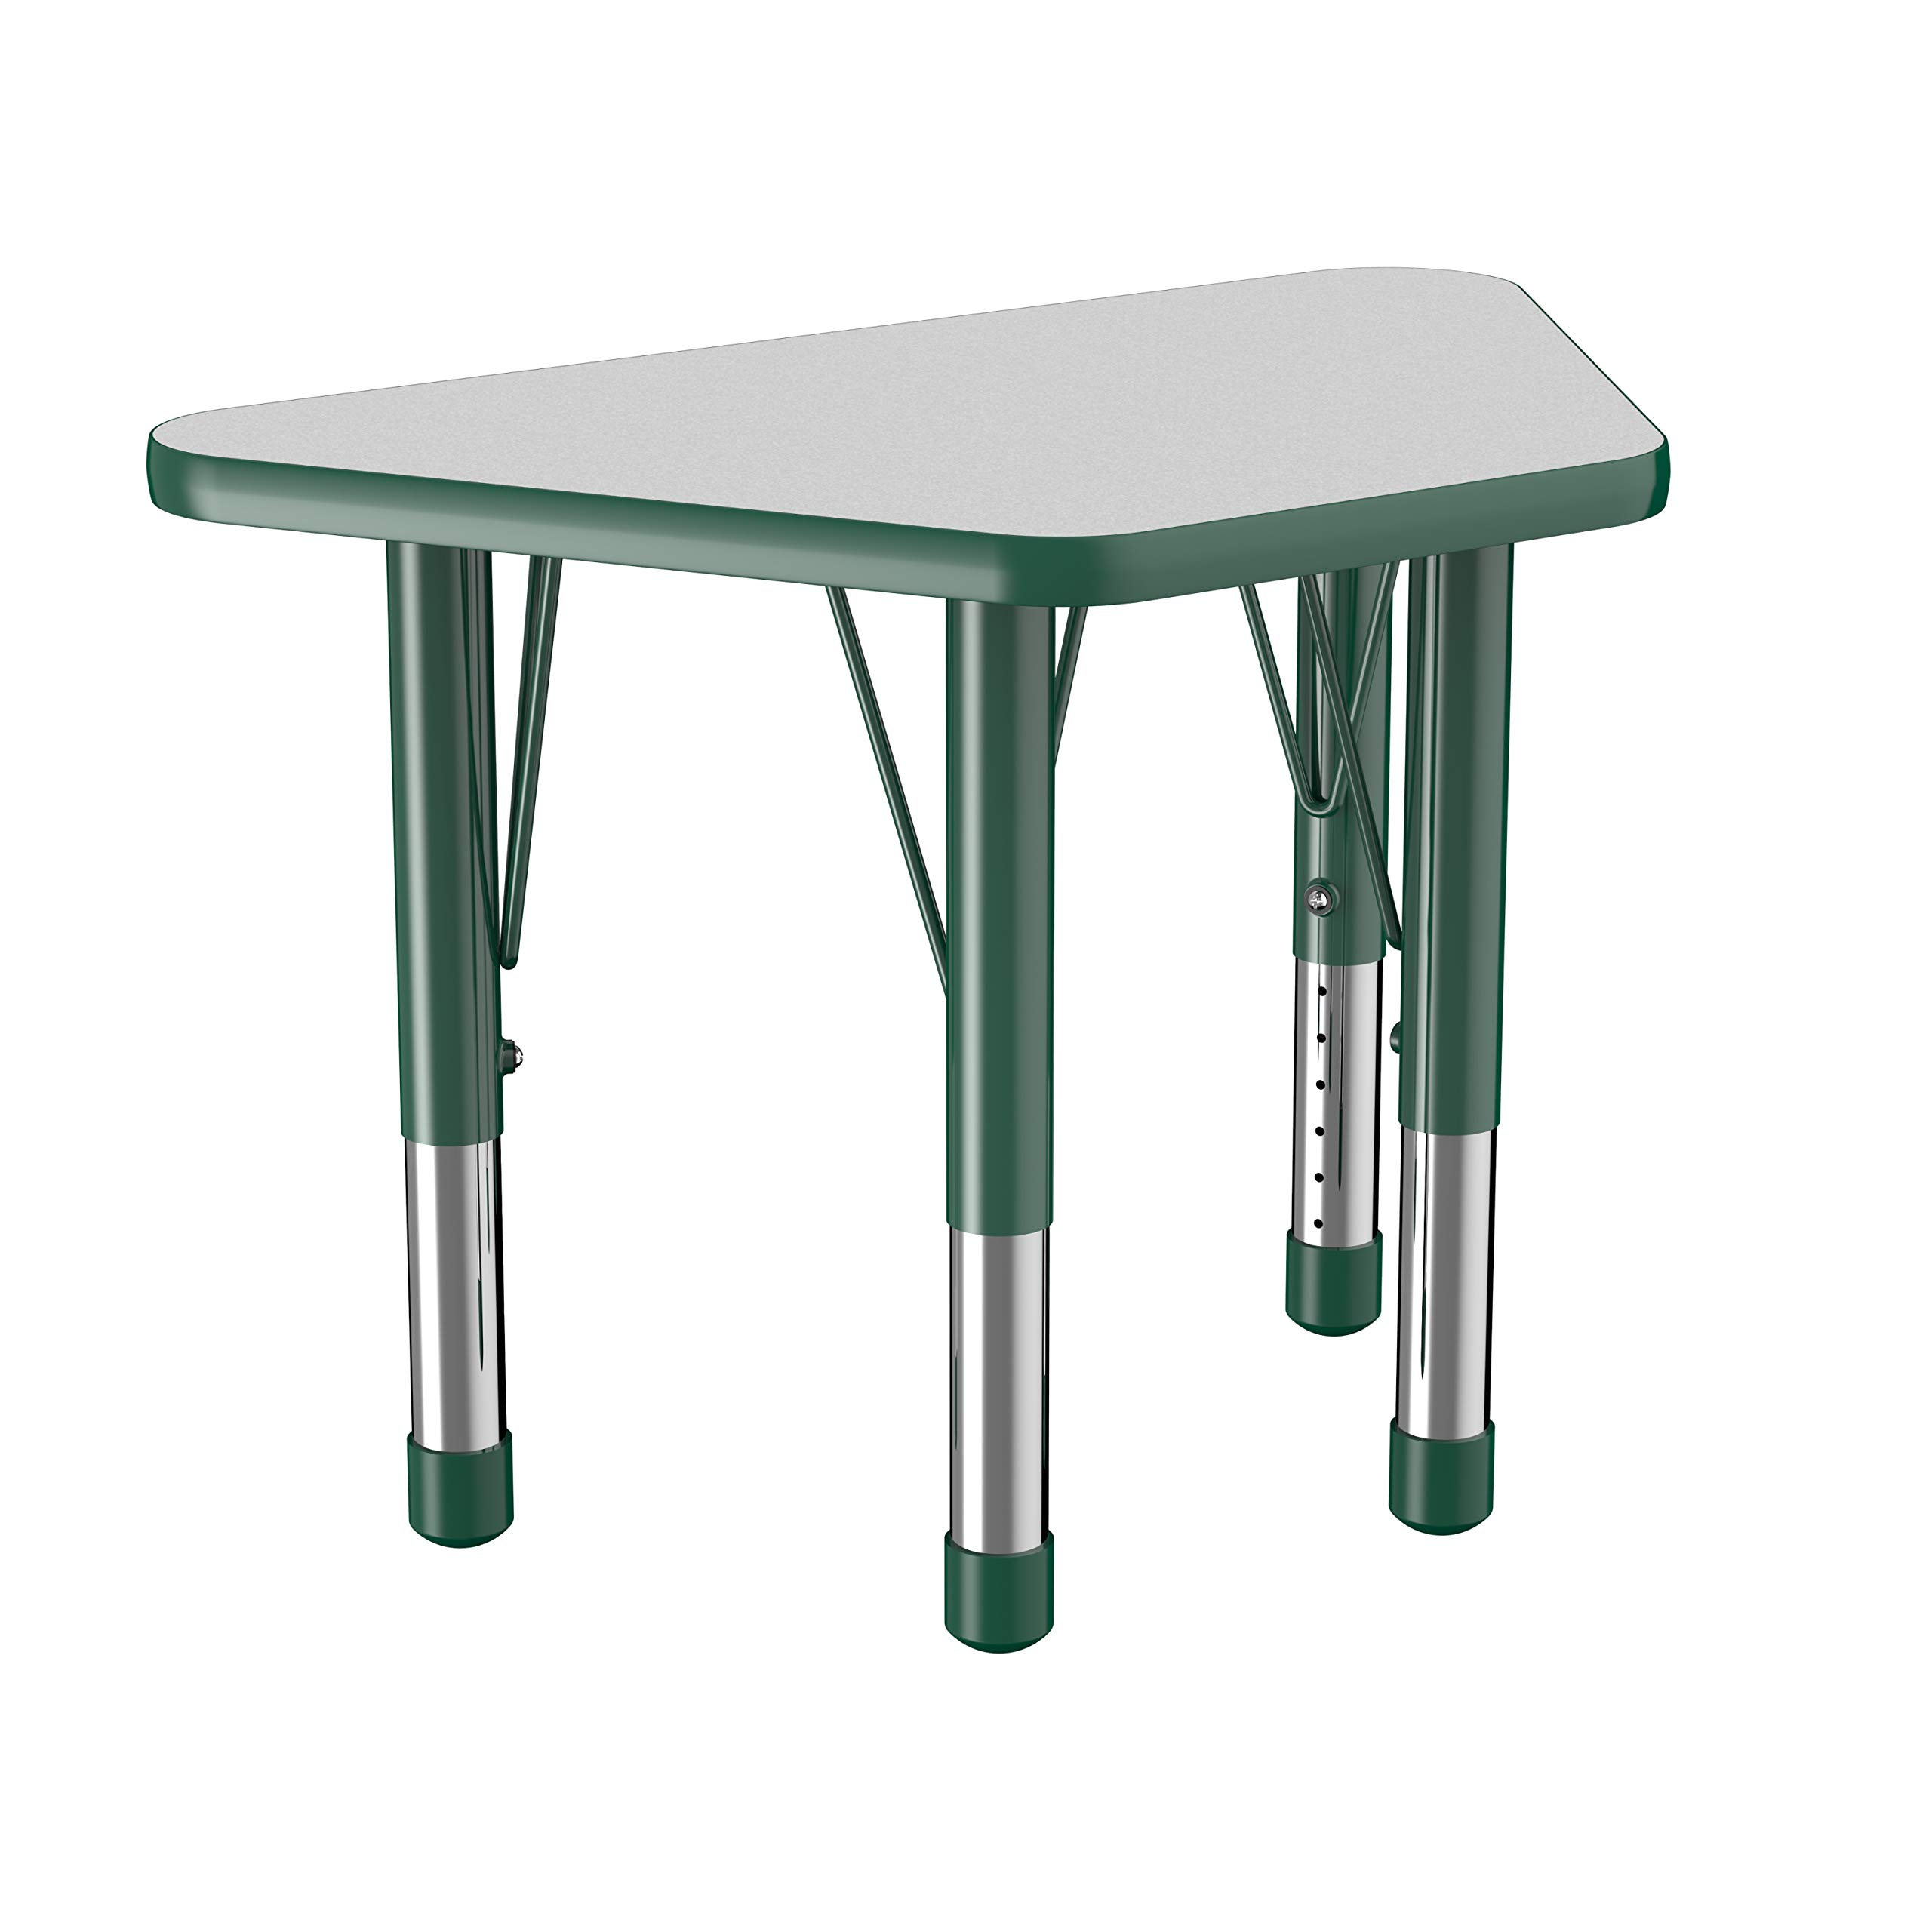 FDP Trapezoid Activity School and Classroom Kids Table (18 x 30 inch), Toddler Legs for Collaborative Seating Environments, Adjustable Height 15-24 inches - Gray Top and Green Edge